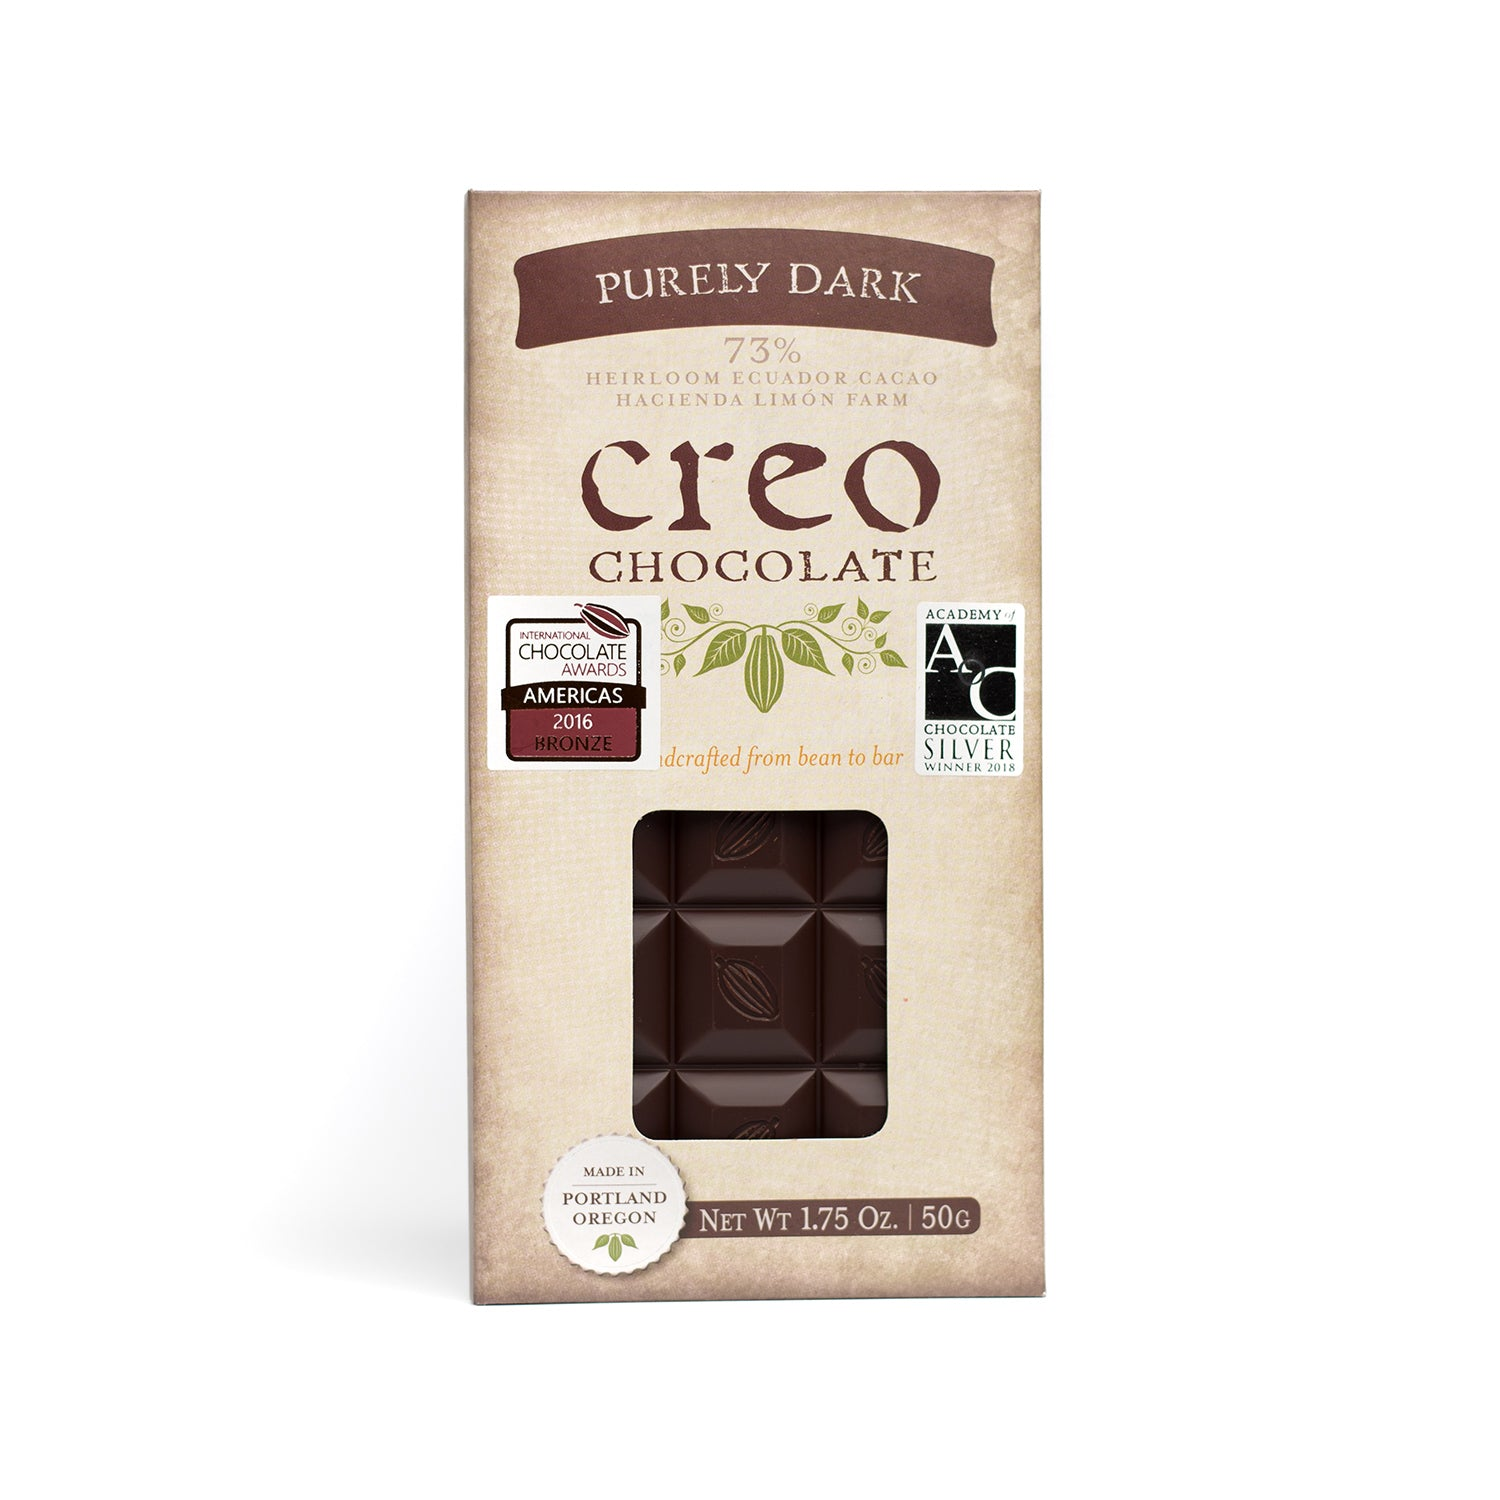 Purely Dark 73% - Creo Chocolate